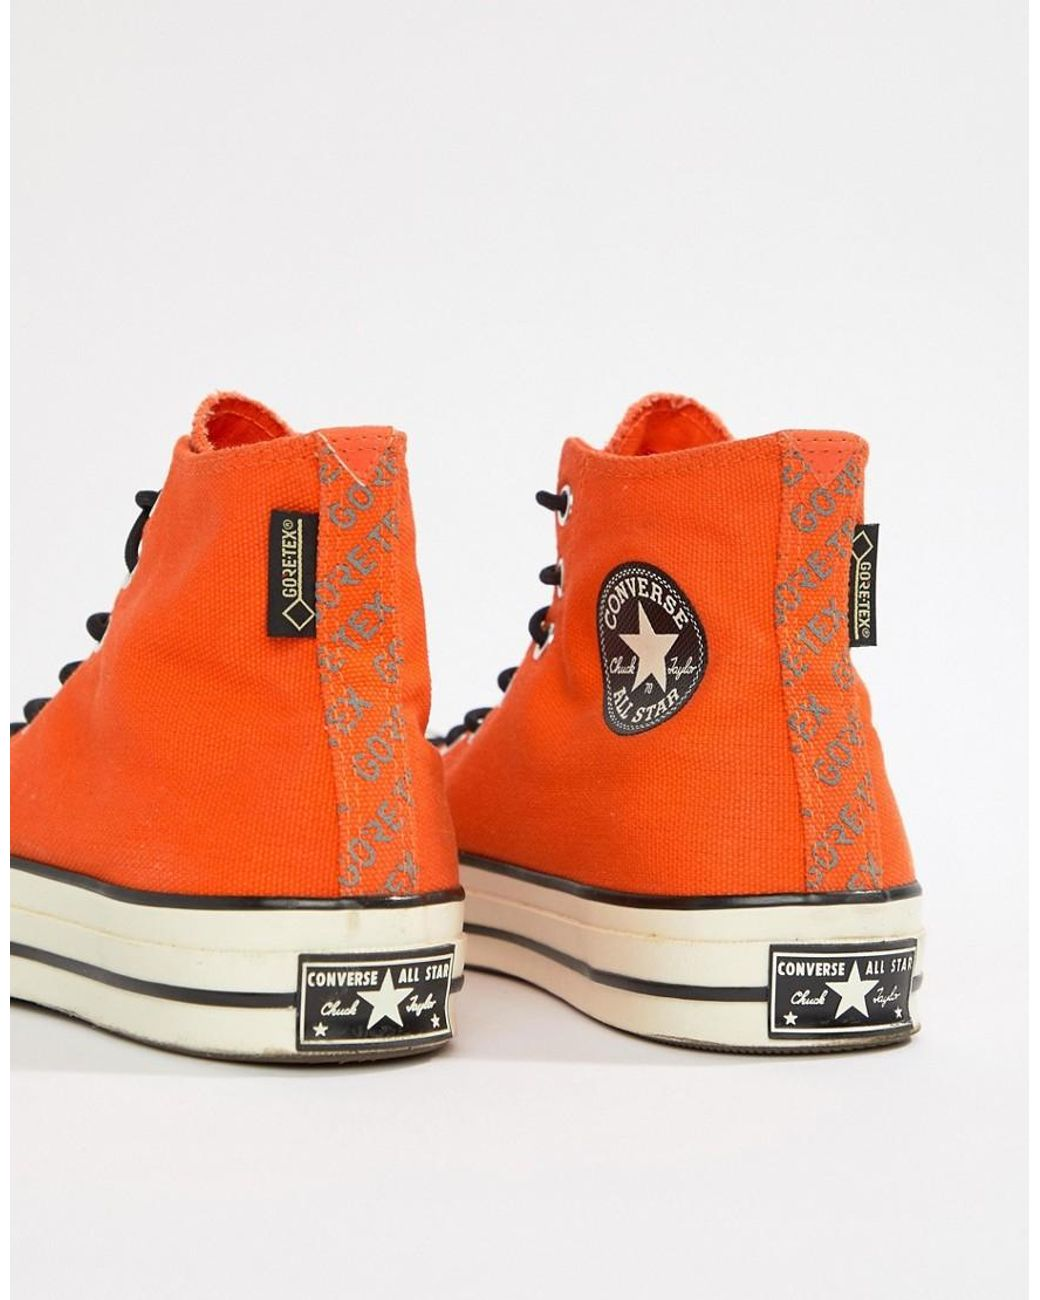 Chuck Taylor All Star - Baskets montantes imperméables style 70's - 162351C